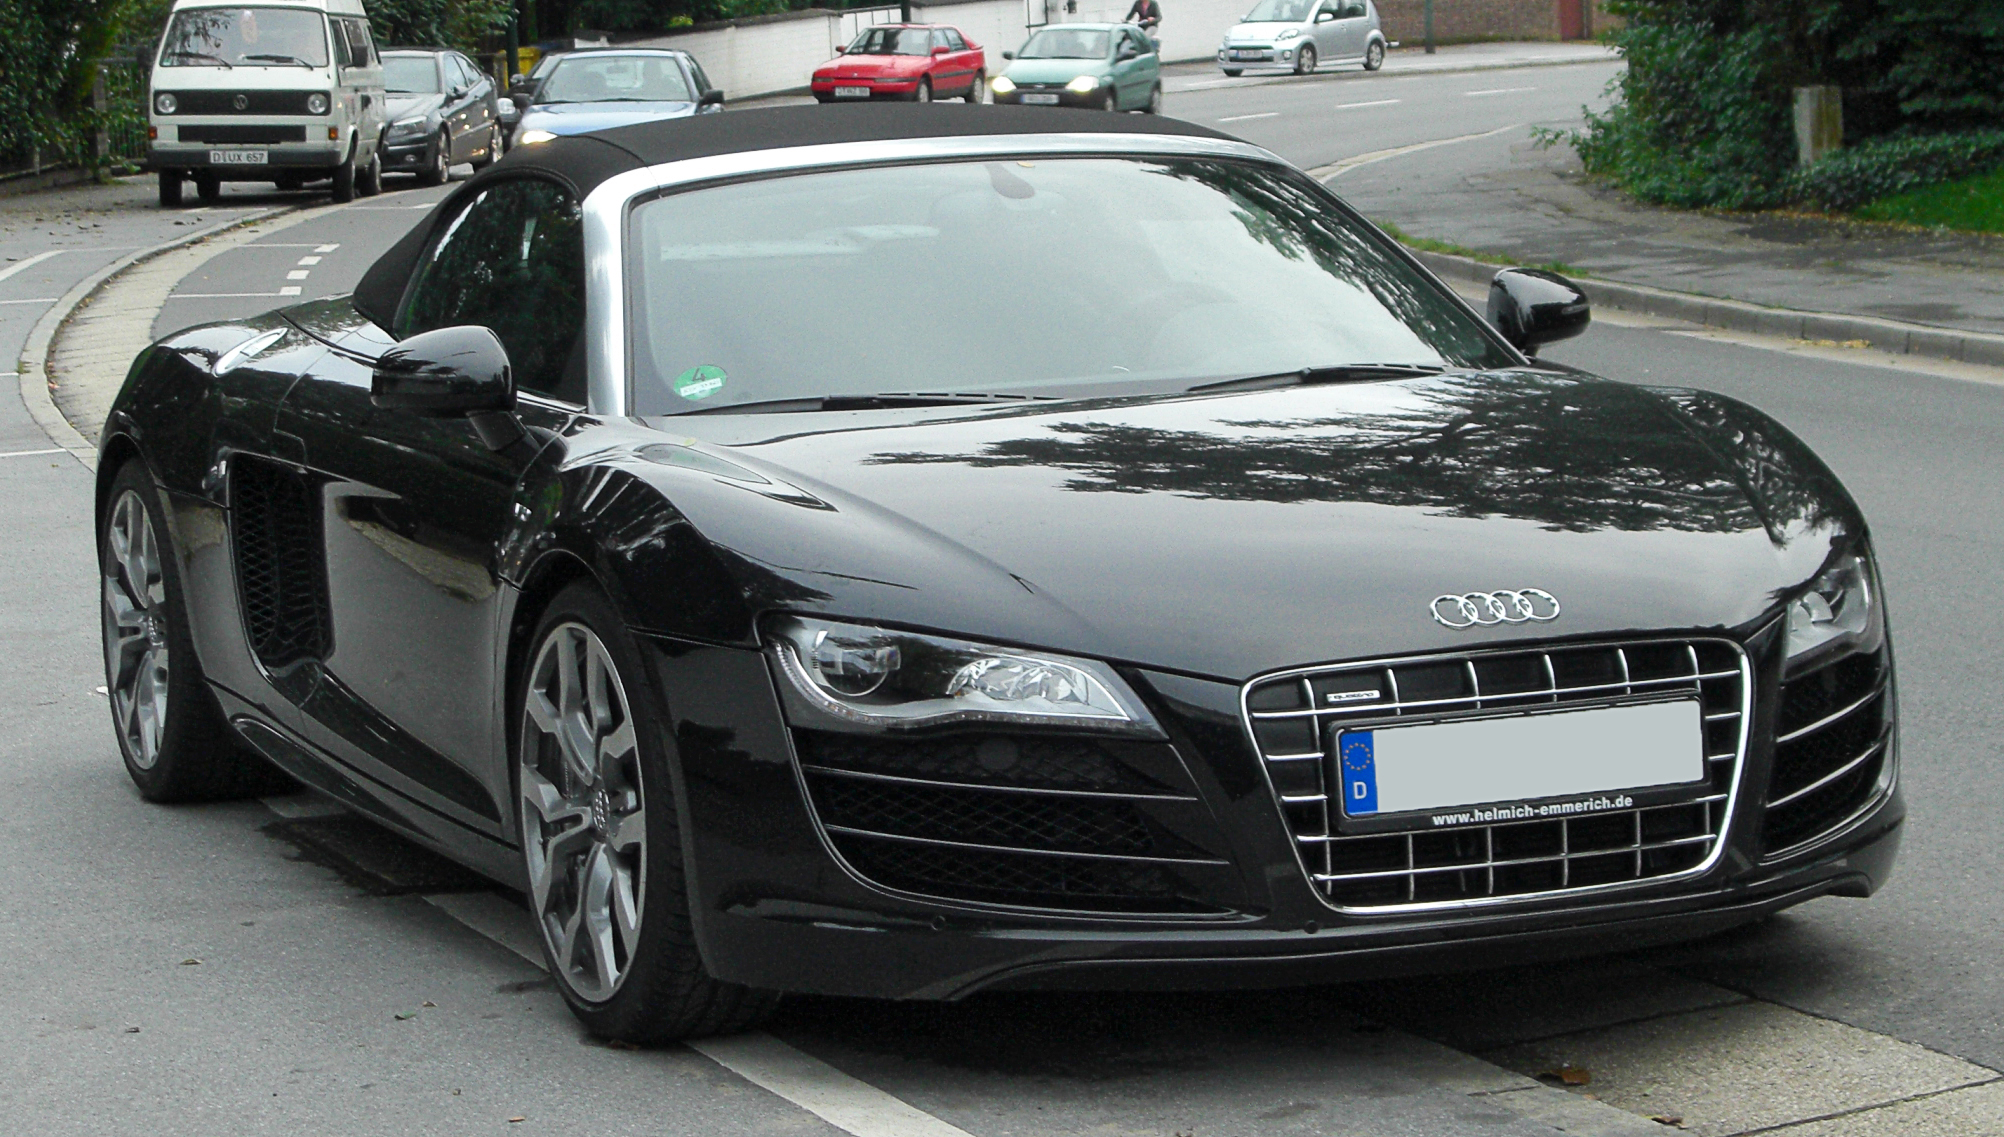 file audi r8 spyder v10 front wikimedia commons. Black Bedroom Furniture Sets. Home Design Ideas